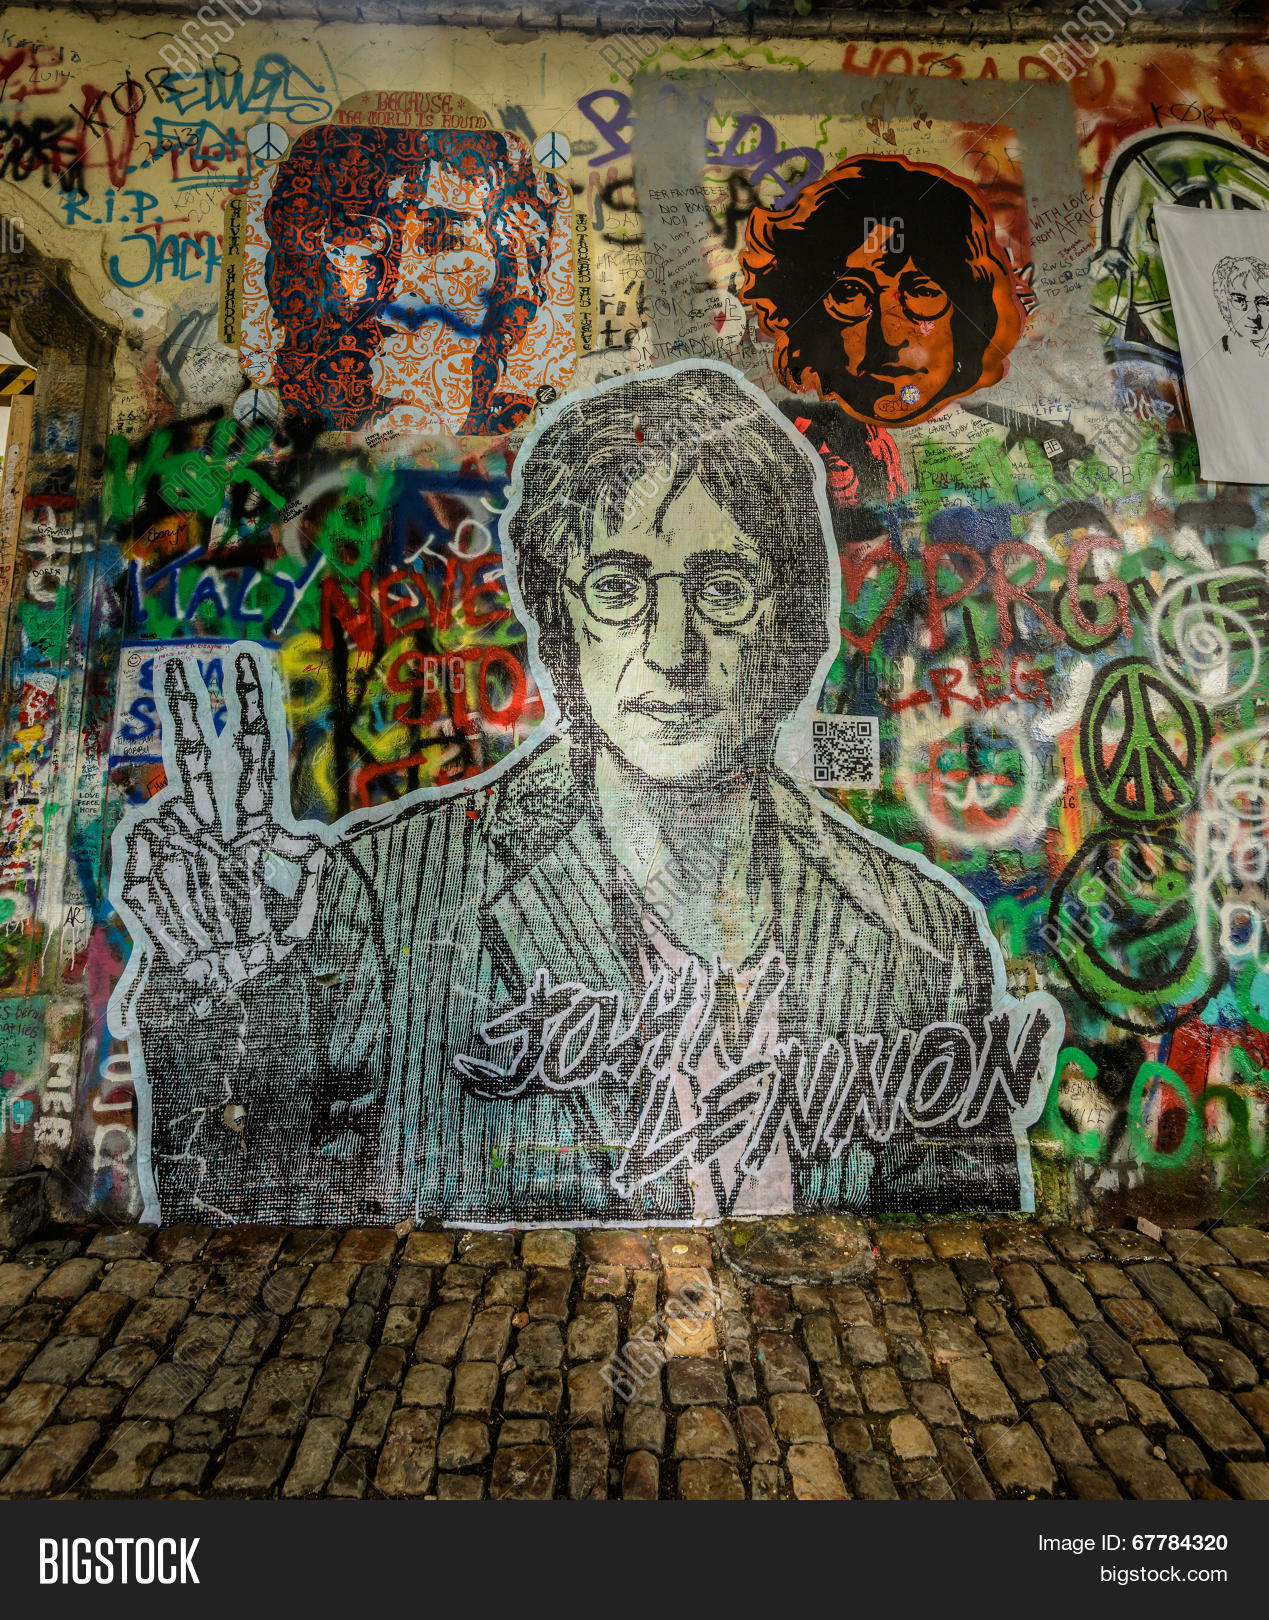 Prague czech republic may 24the lennon wall since the 1980s filled with john lennon inspired graffiti and pieces of lyrics from beatles songs on may 24